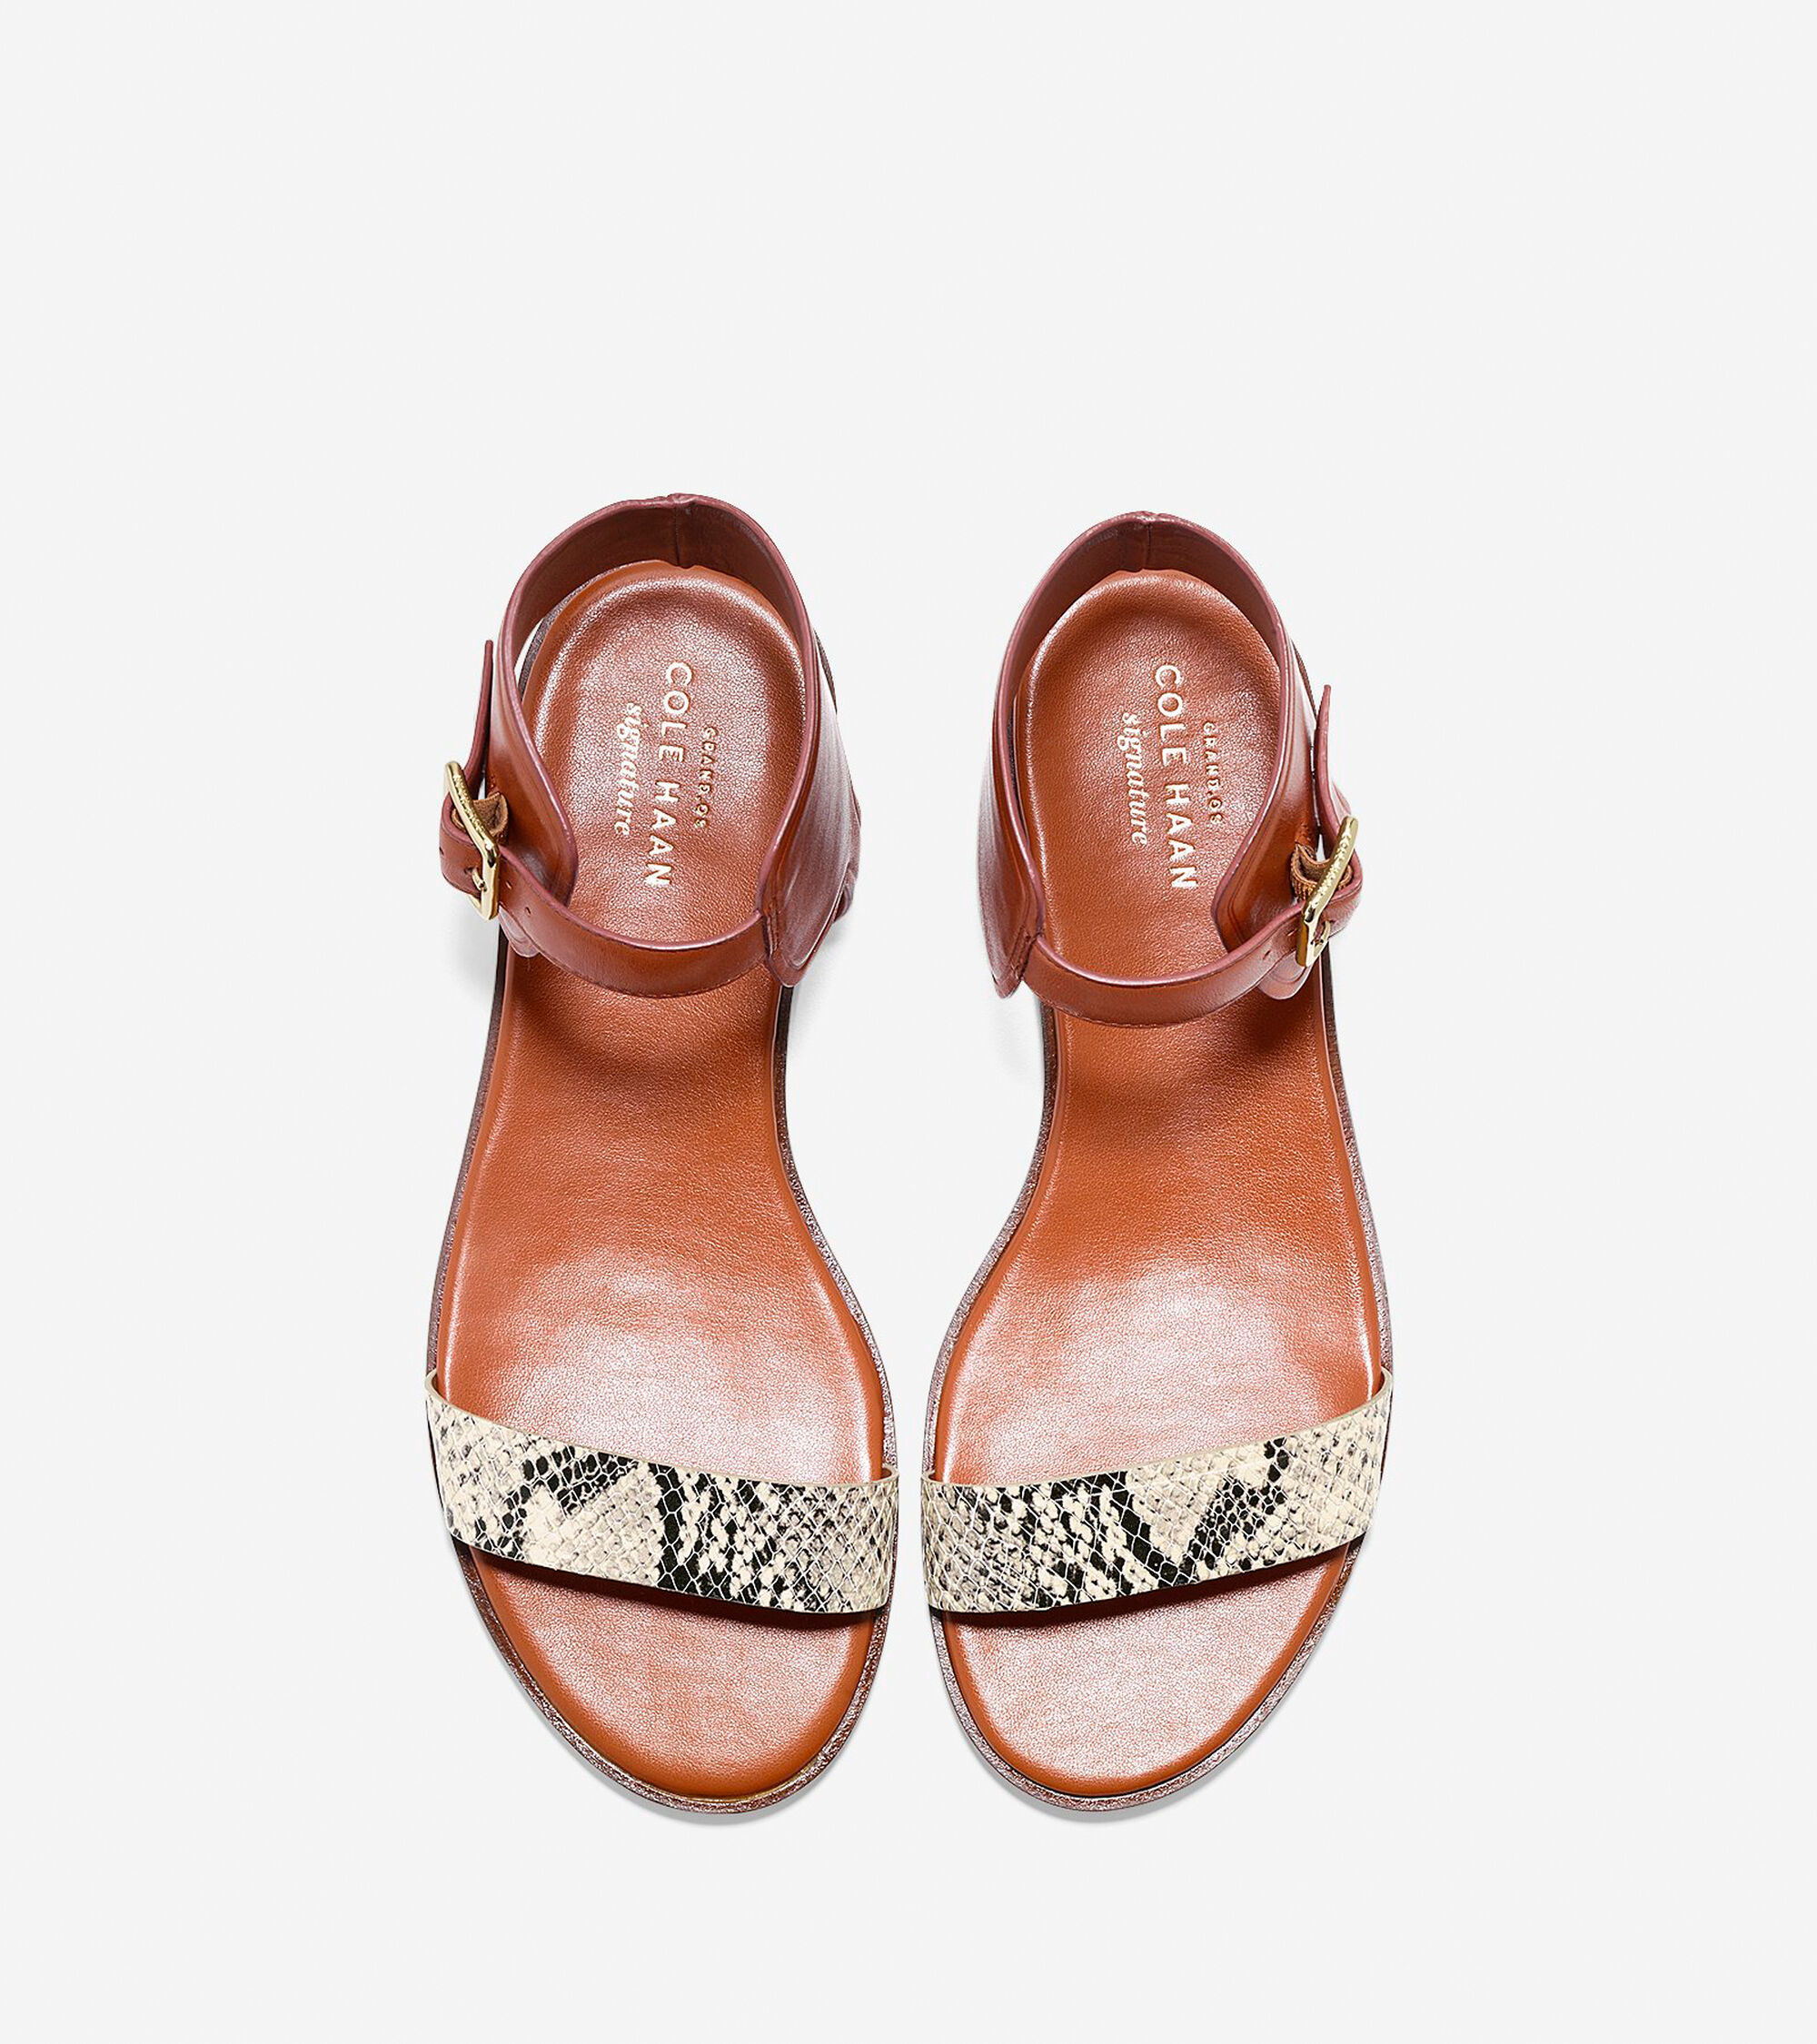 df2cfc08cf2 Womens Barra Sandals in Camello Leather